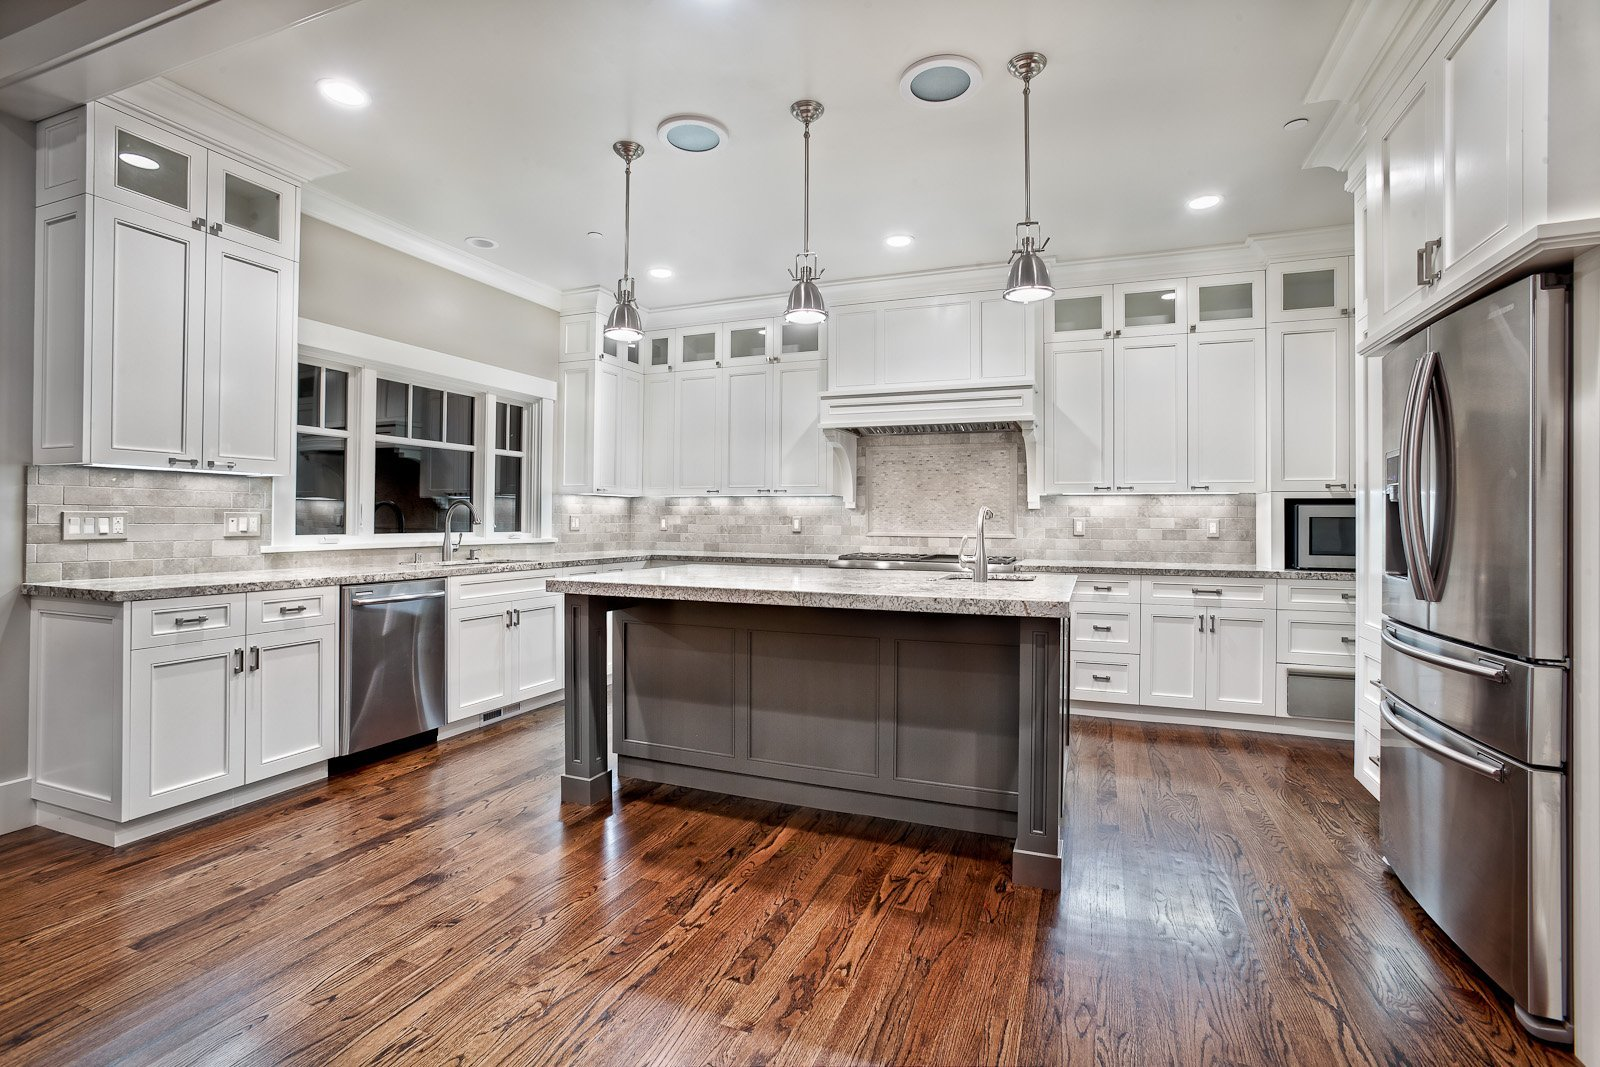 Cabinetry Refinishing Enterprises – Smart. Stylish. Stunning.